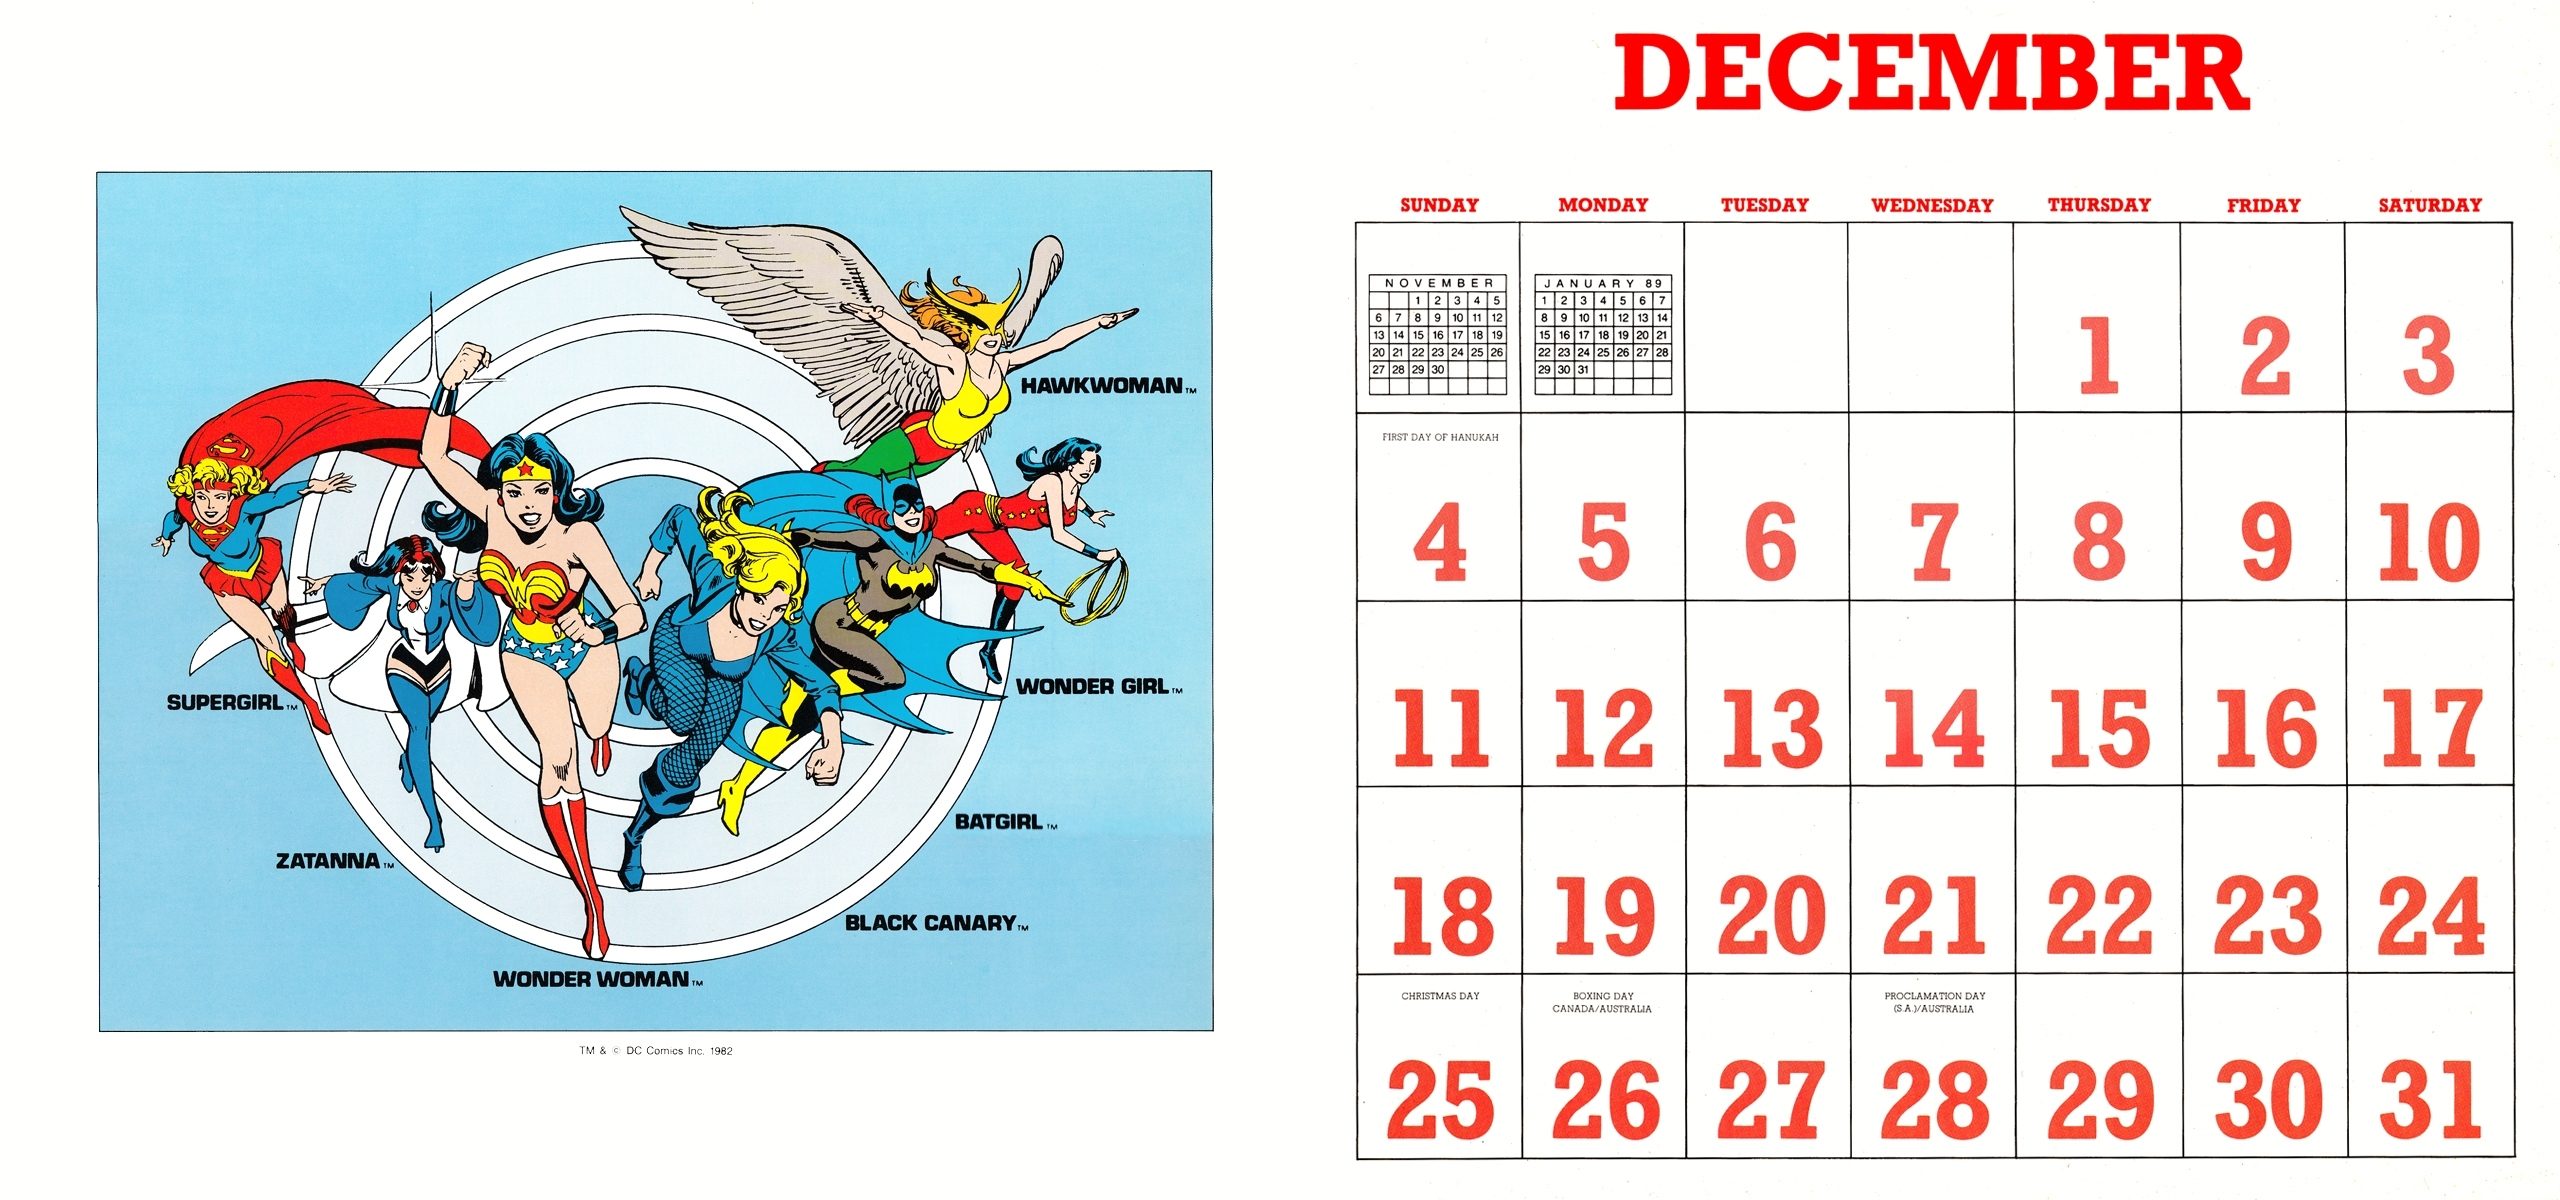 October 1988 Calendar | Thegioithamdep intended for Hindu Calender Of March 1988